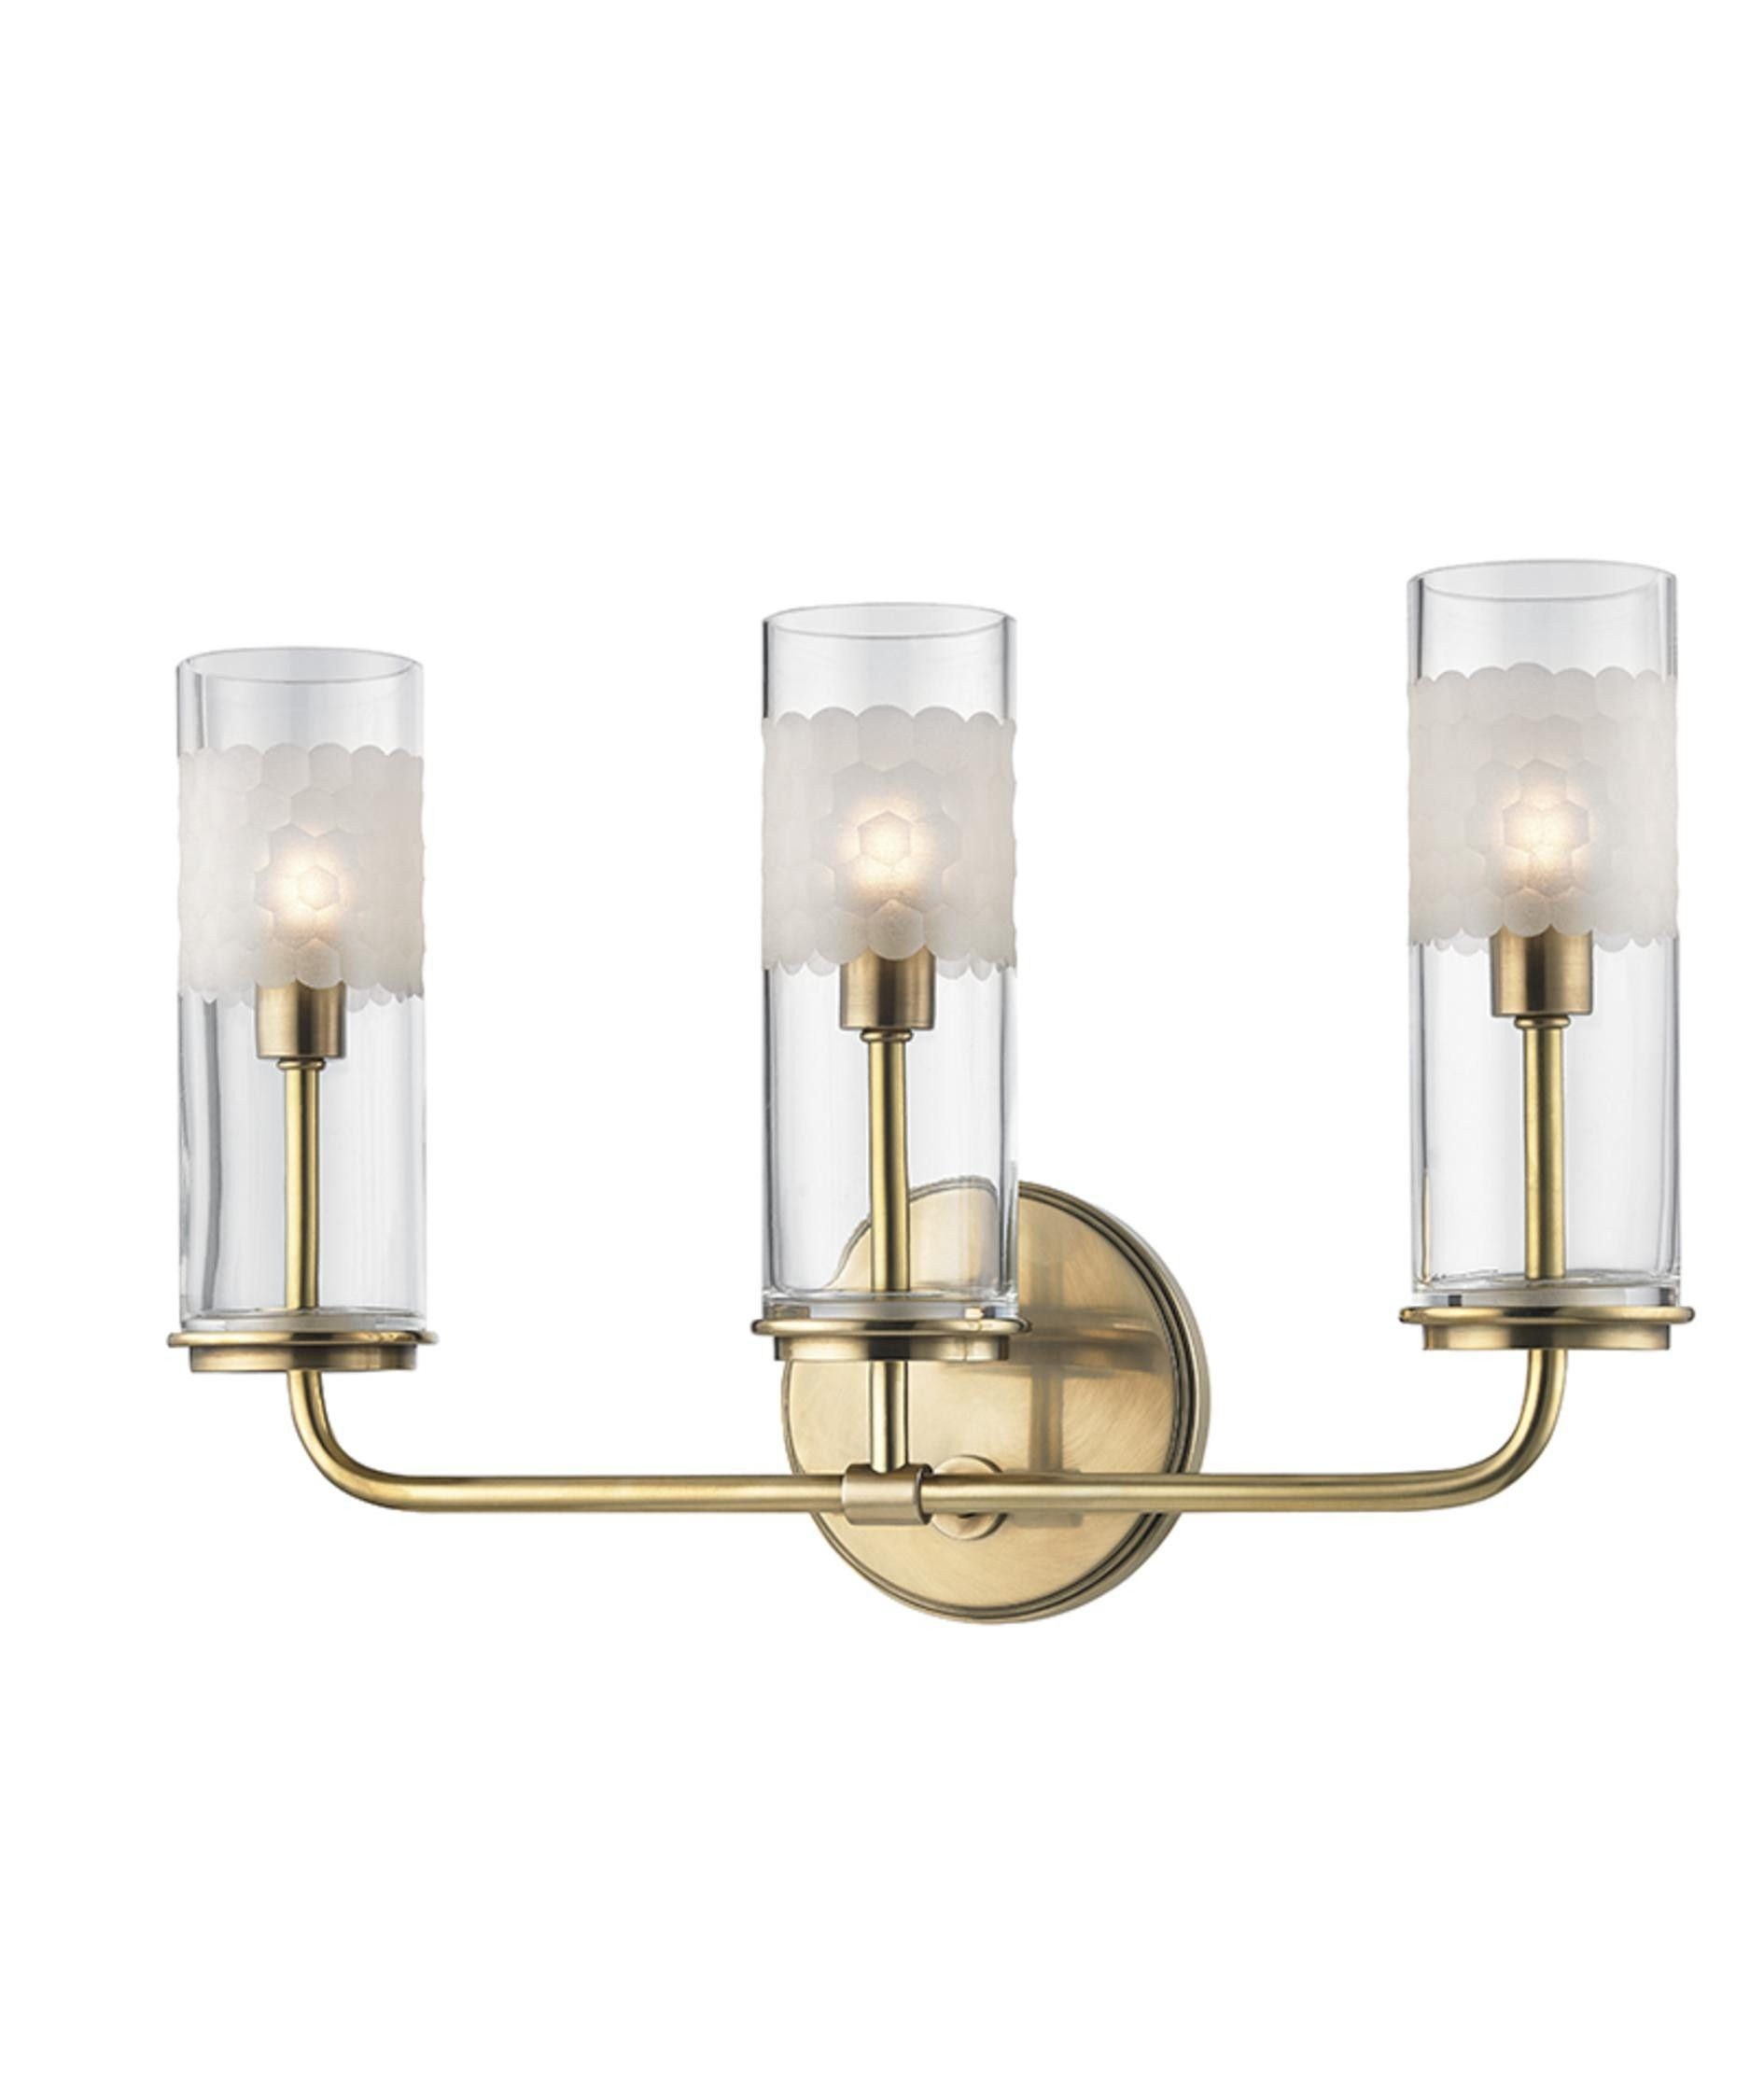 Hanging bathroom lights - Lighting Bathroom Sconce Modern Sconce Hanging Chandeliers Exterior Lighting Fixtures Antique Brass Chandeliers 1